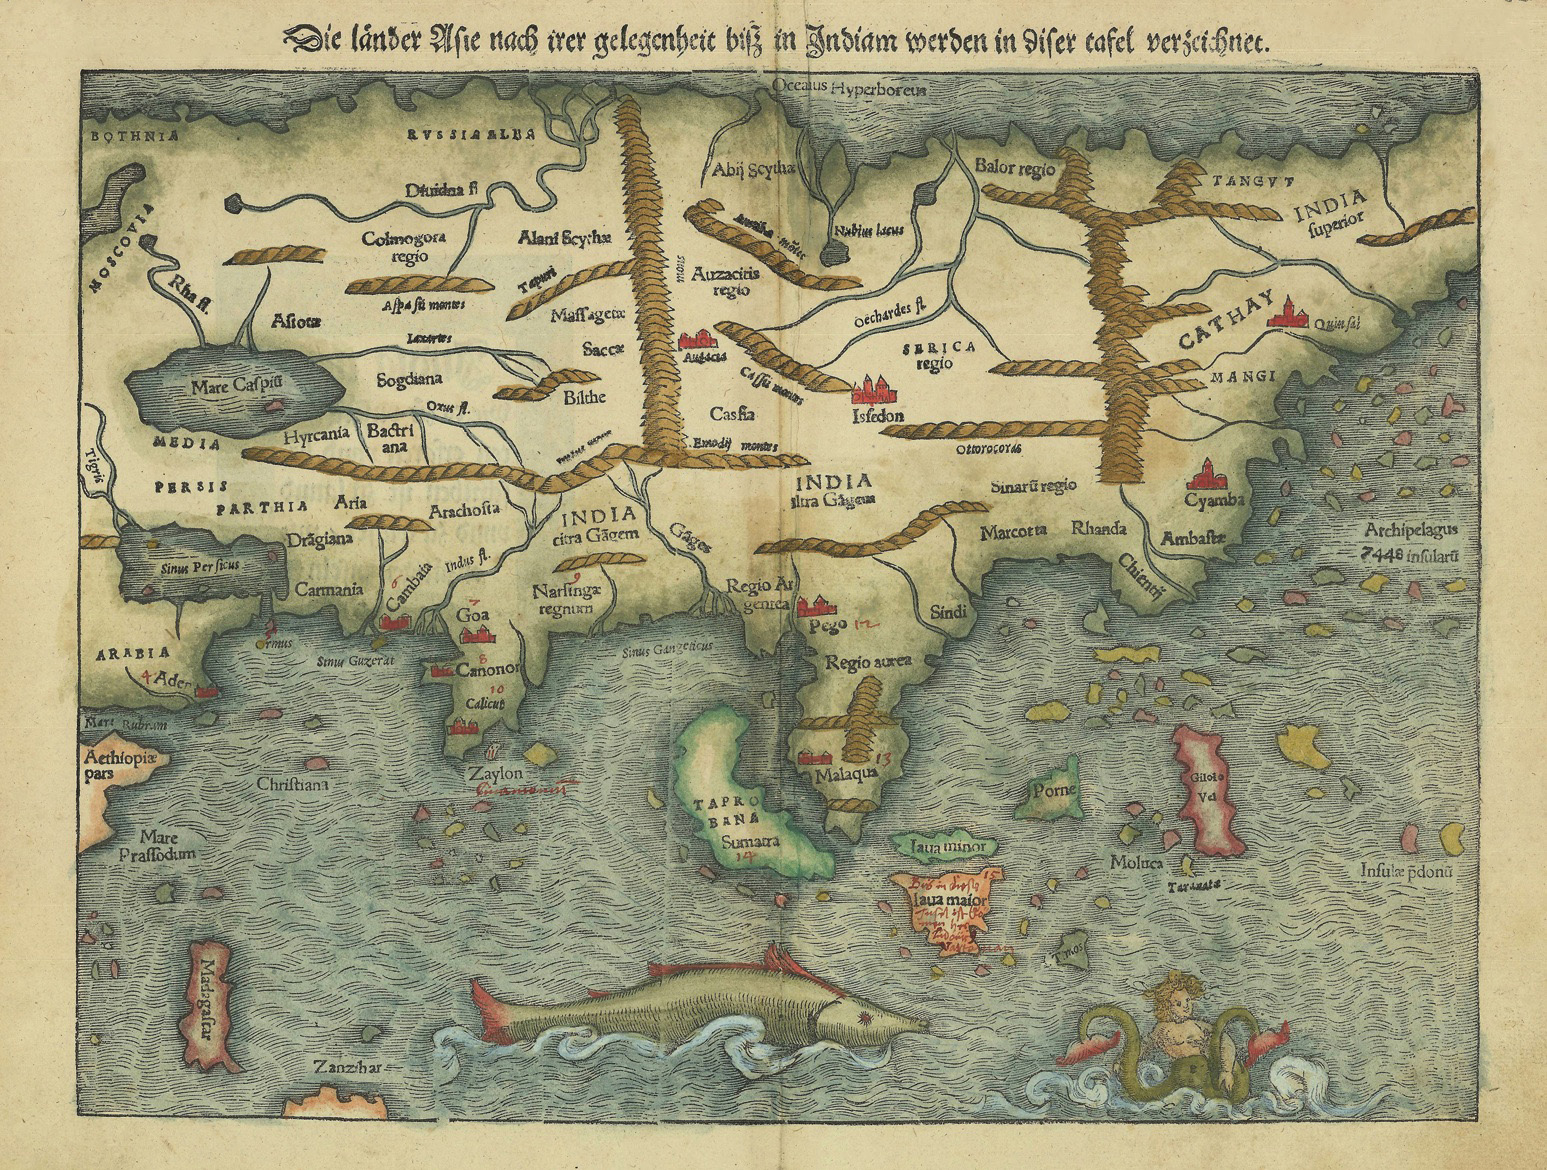 Woodcut map of Asia by SMnster Bartele GalleryBartele Gallery